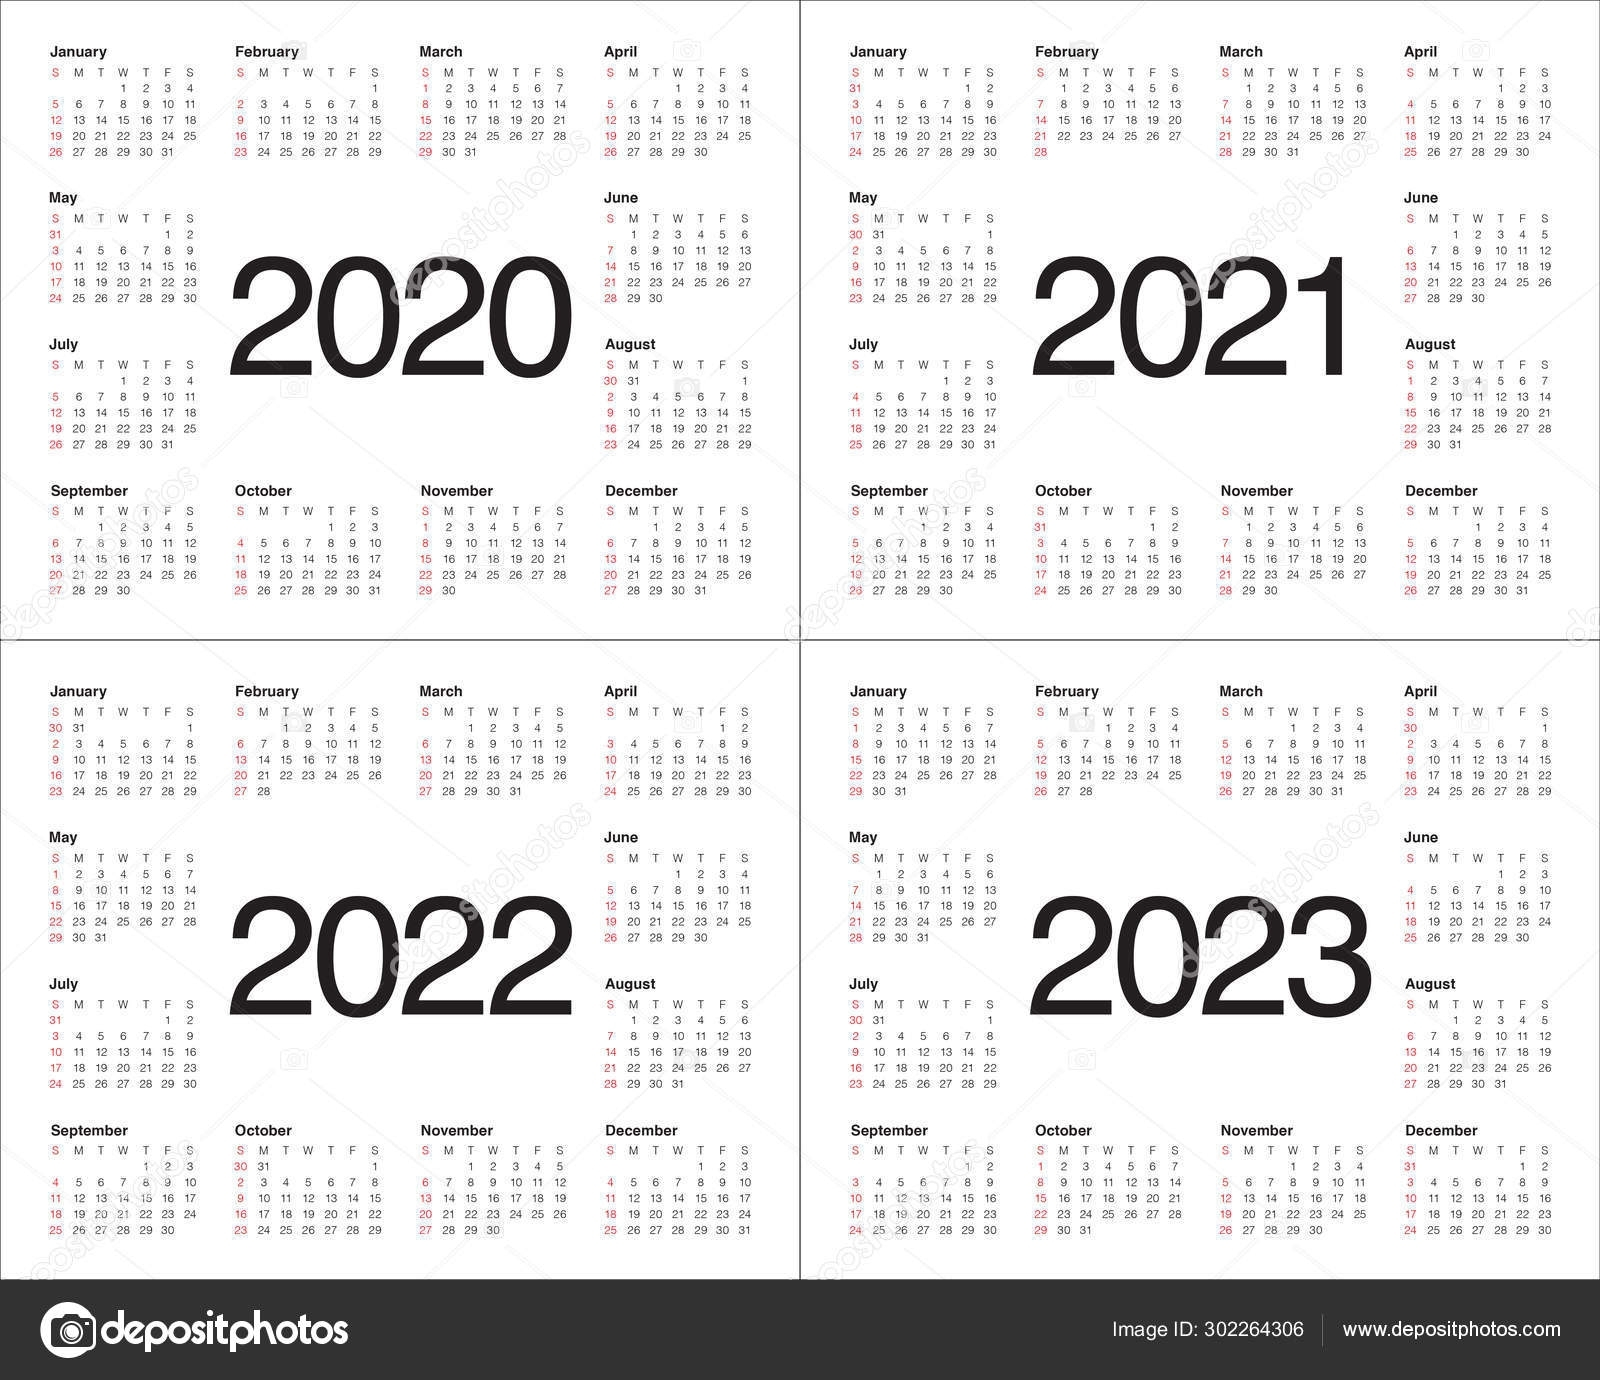 Calendar For 2020 To 2023 - Calendar Inspiration Design